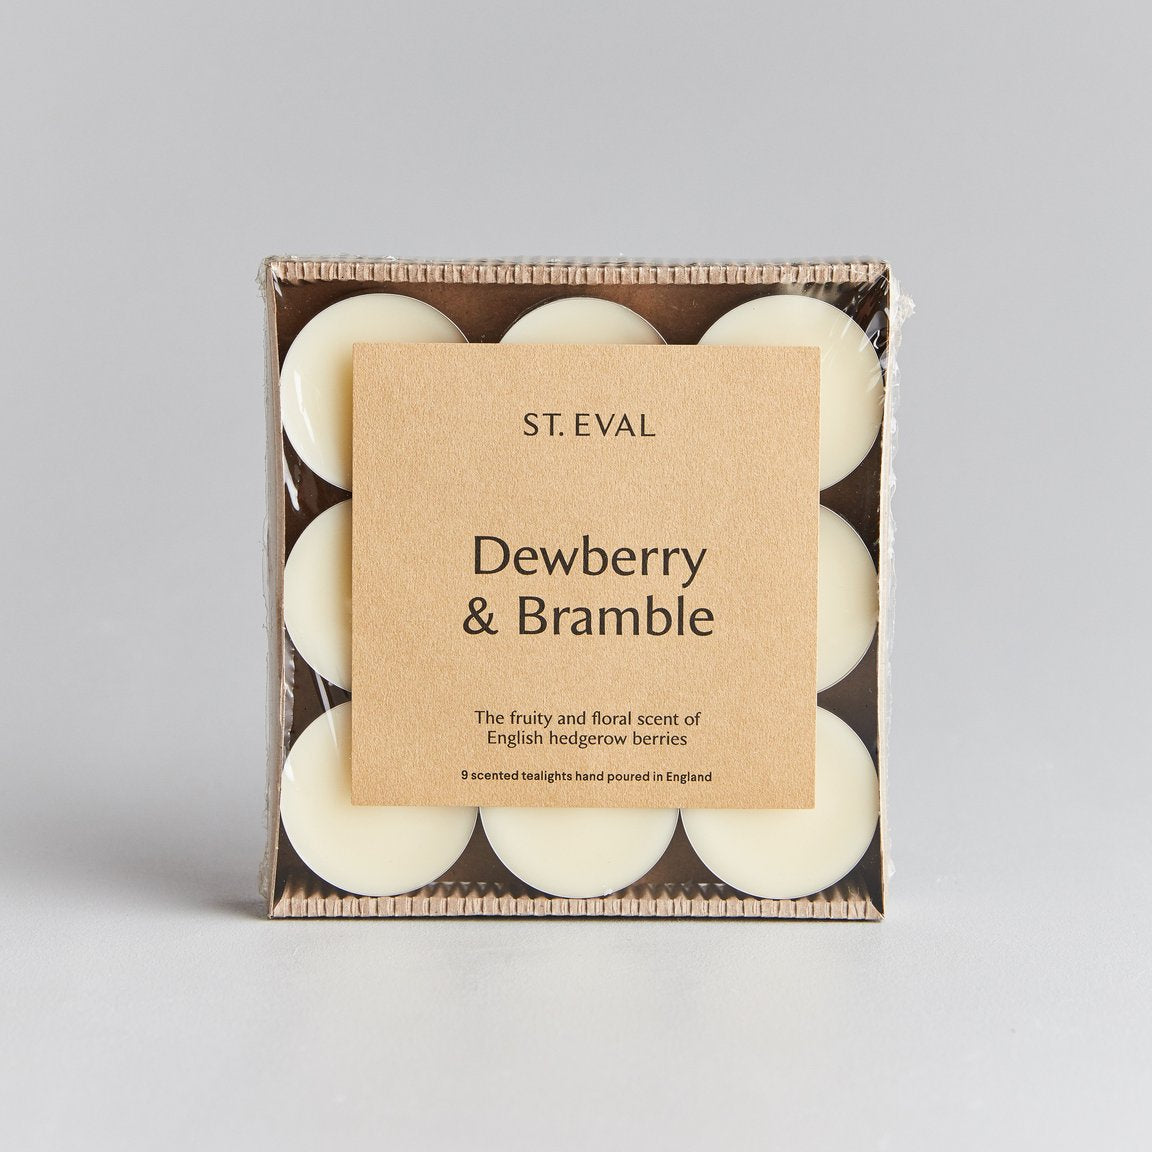 St Eval Dewberry & Bramble Tealights